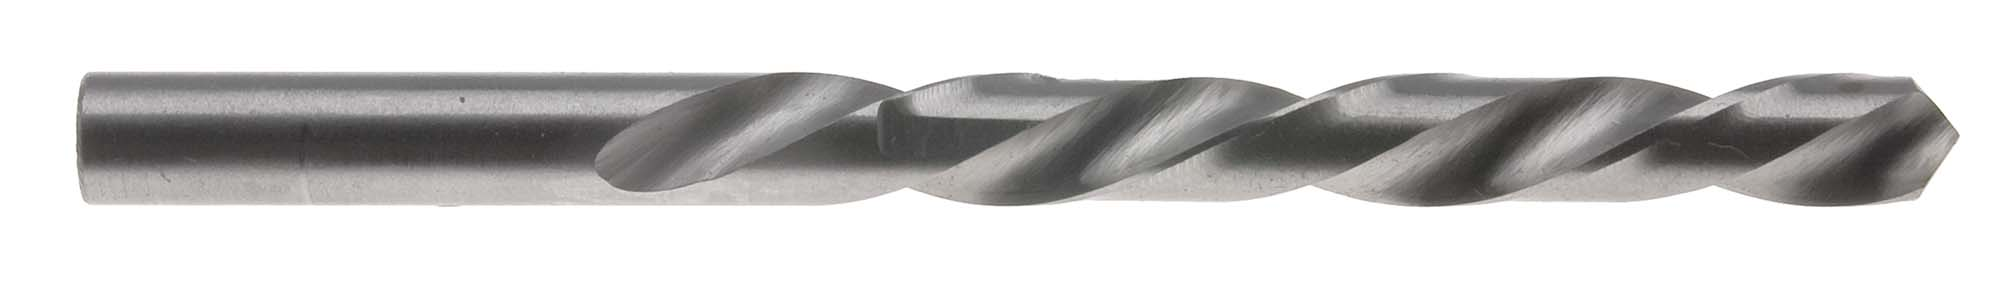 "#45 (.0820"") Left Hand Jobber Drill Bit, High Speed Steel"